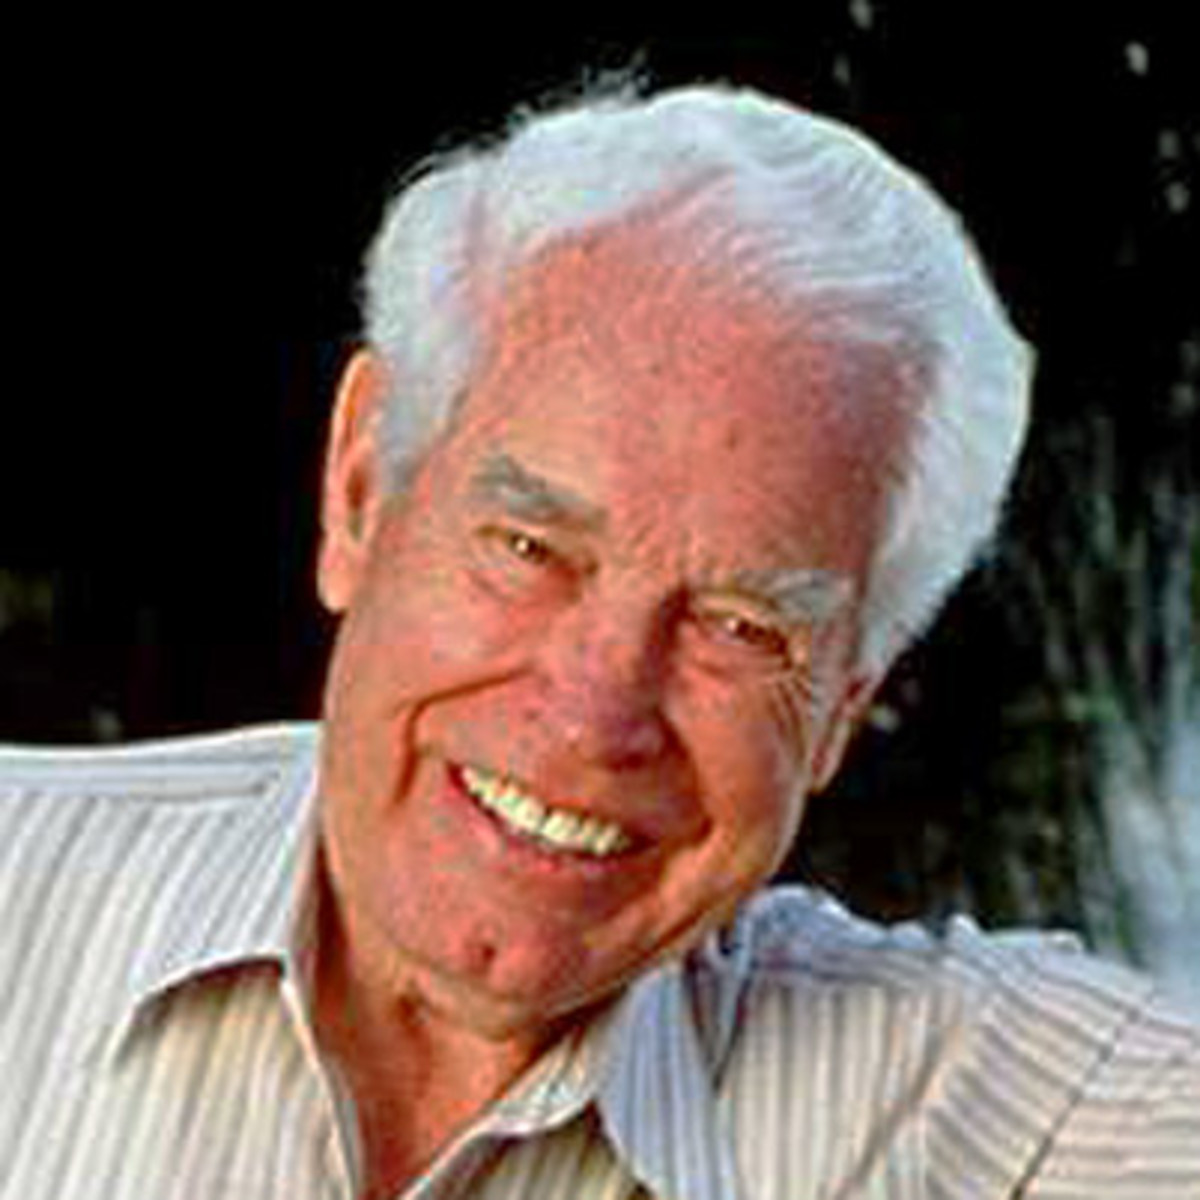 william hanna artist director producer television producer william hanna artist director producer television producer biography com